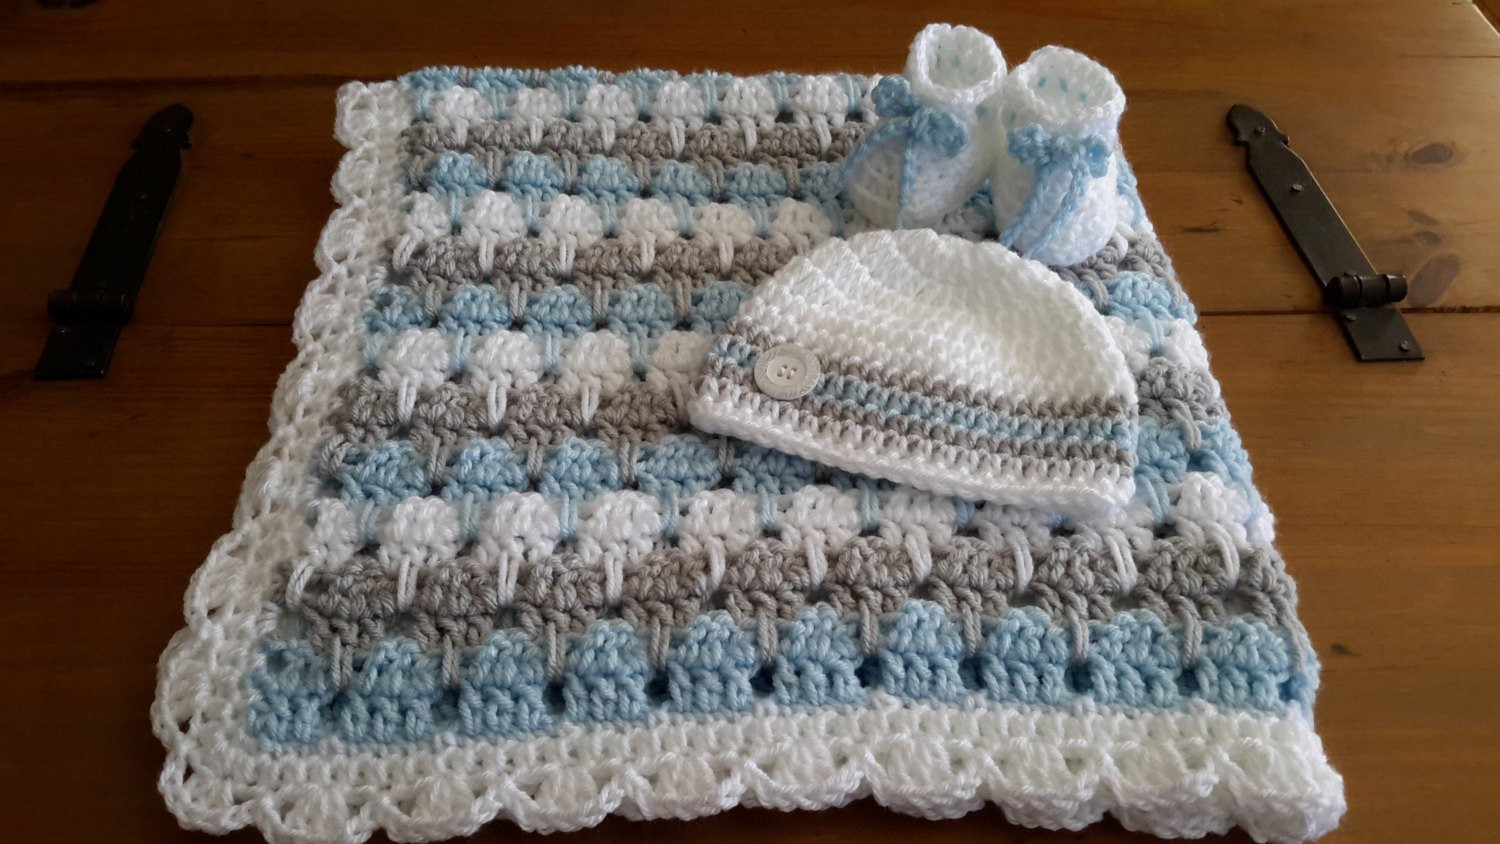 Baby Boy Crochet Blanket Patterns Lovely Baby Boy Blanket Crochet Stripe Crochet Blanket Afghan Of Baby Boy Crochet Blanket Patterns Beautiful Marvelous Monkey Blankets Free Crochet Patterns